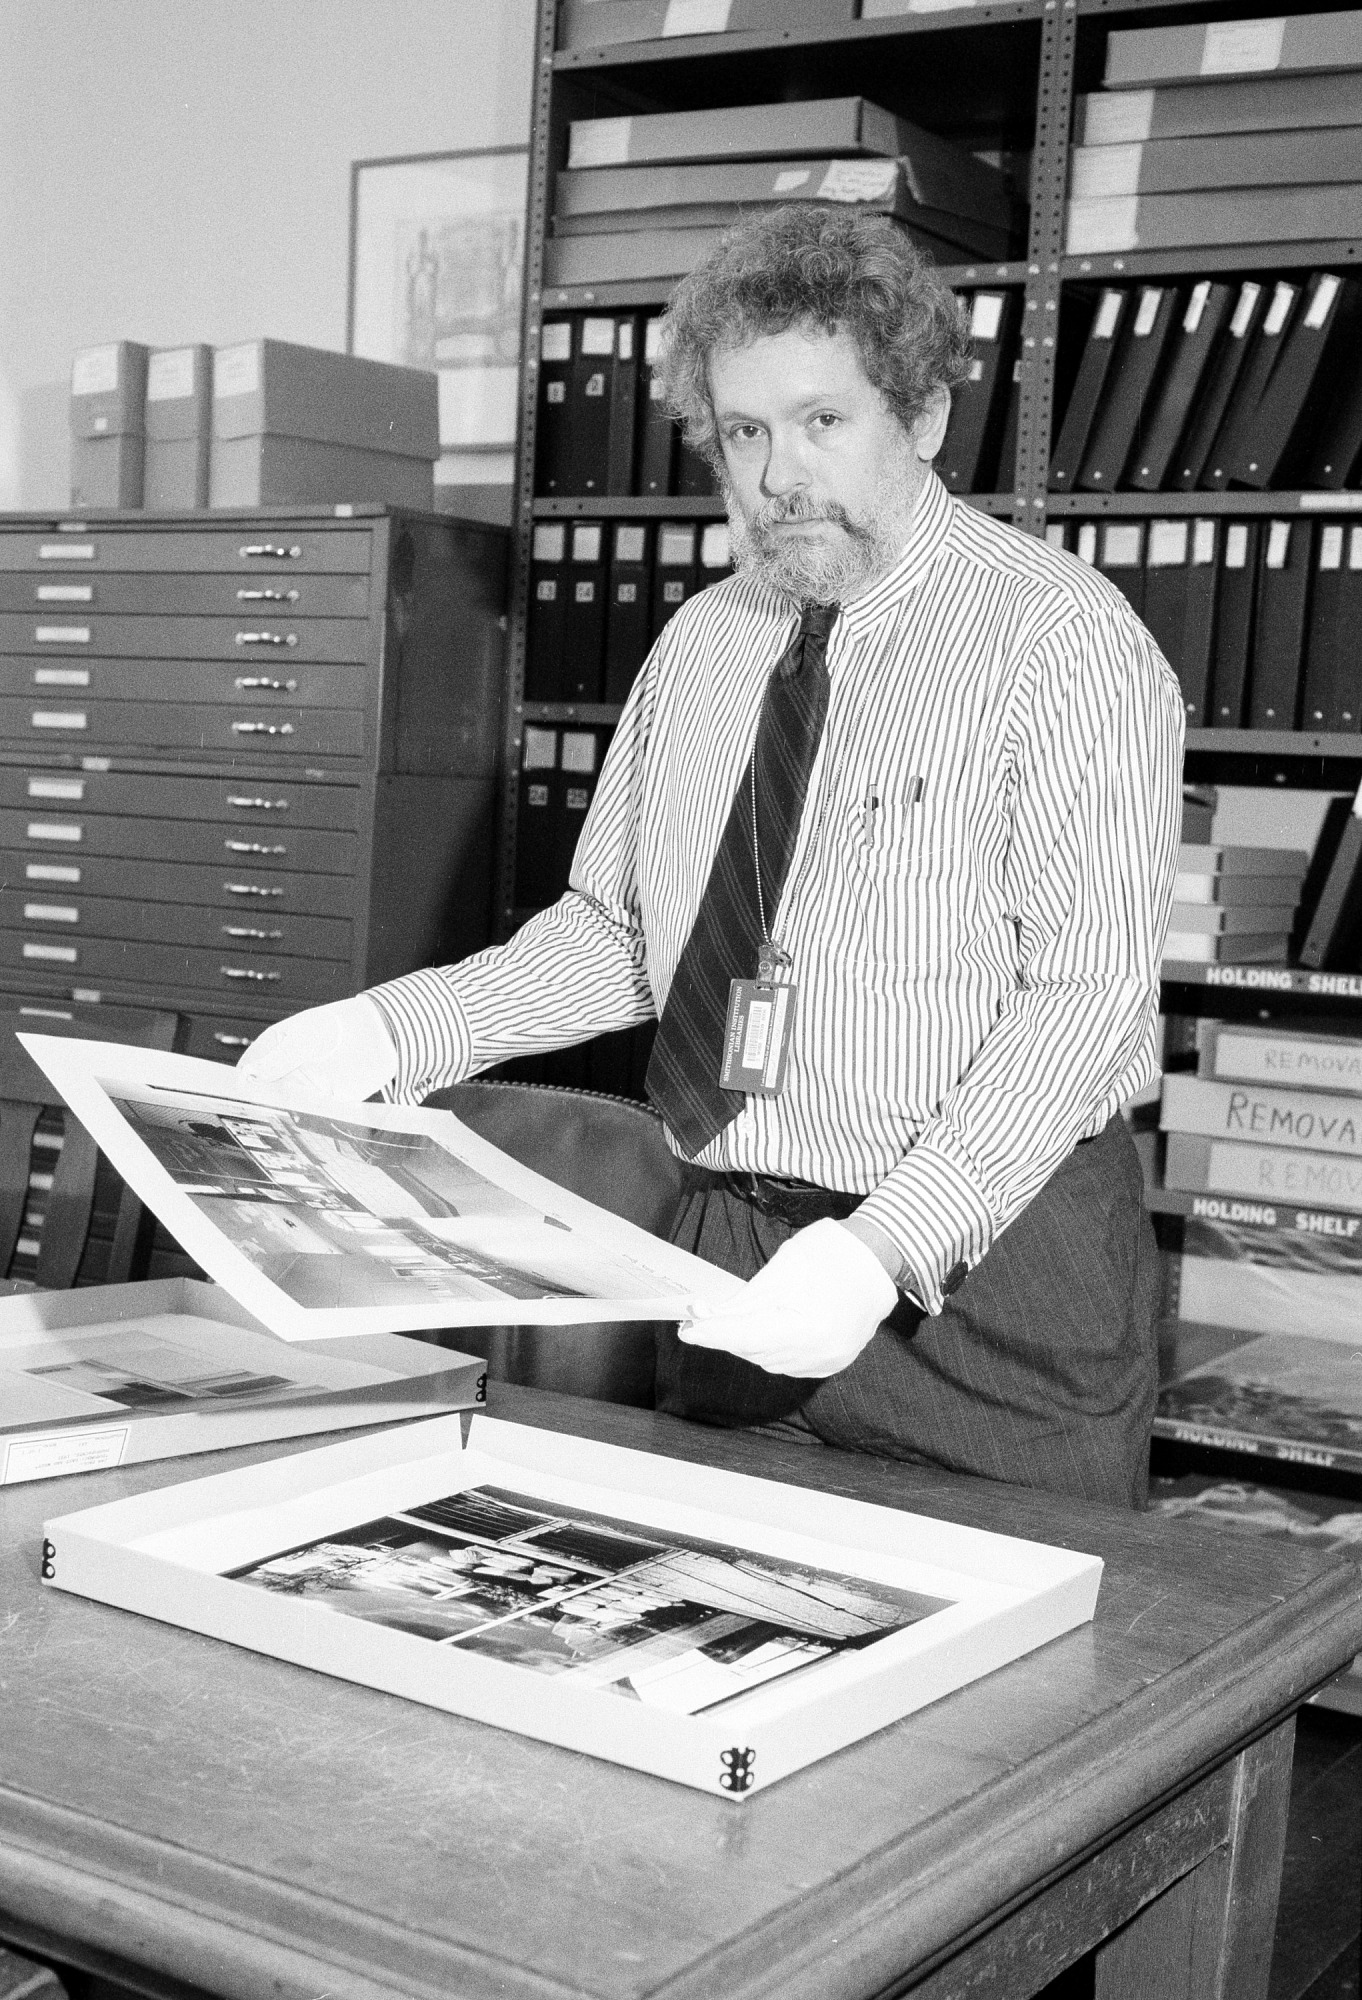 David Haberstich, by Tinsley, Jeff, 1993, Smithsonian Archives - History Div, 93-15890-7.